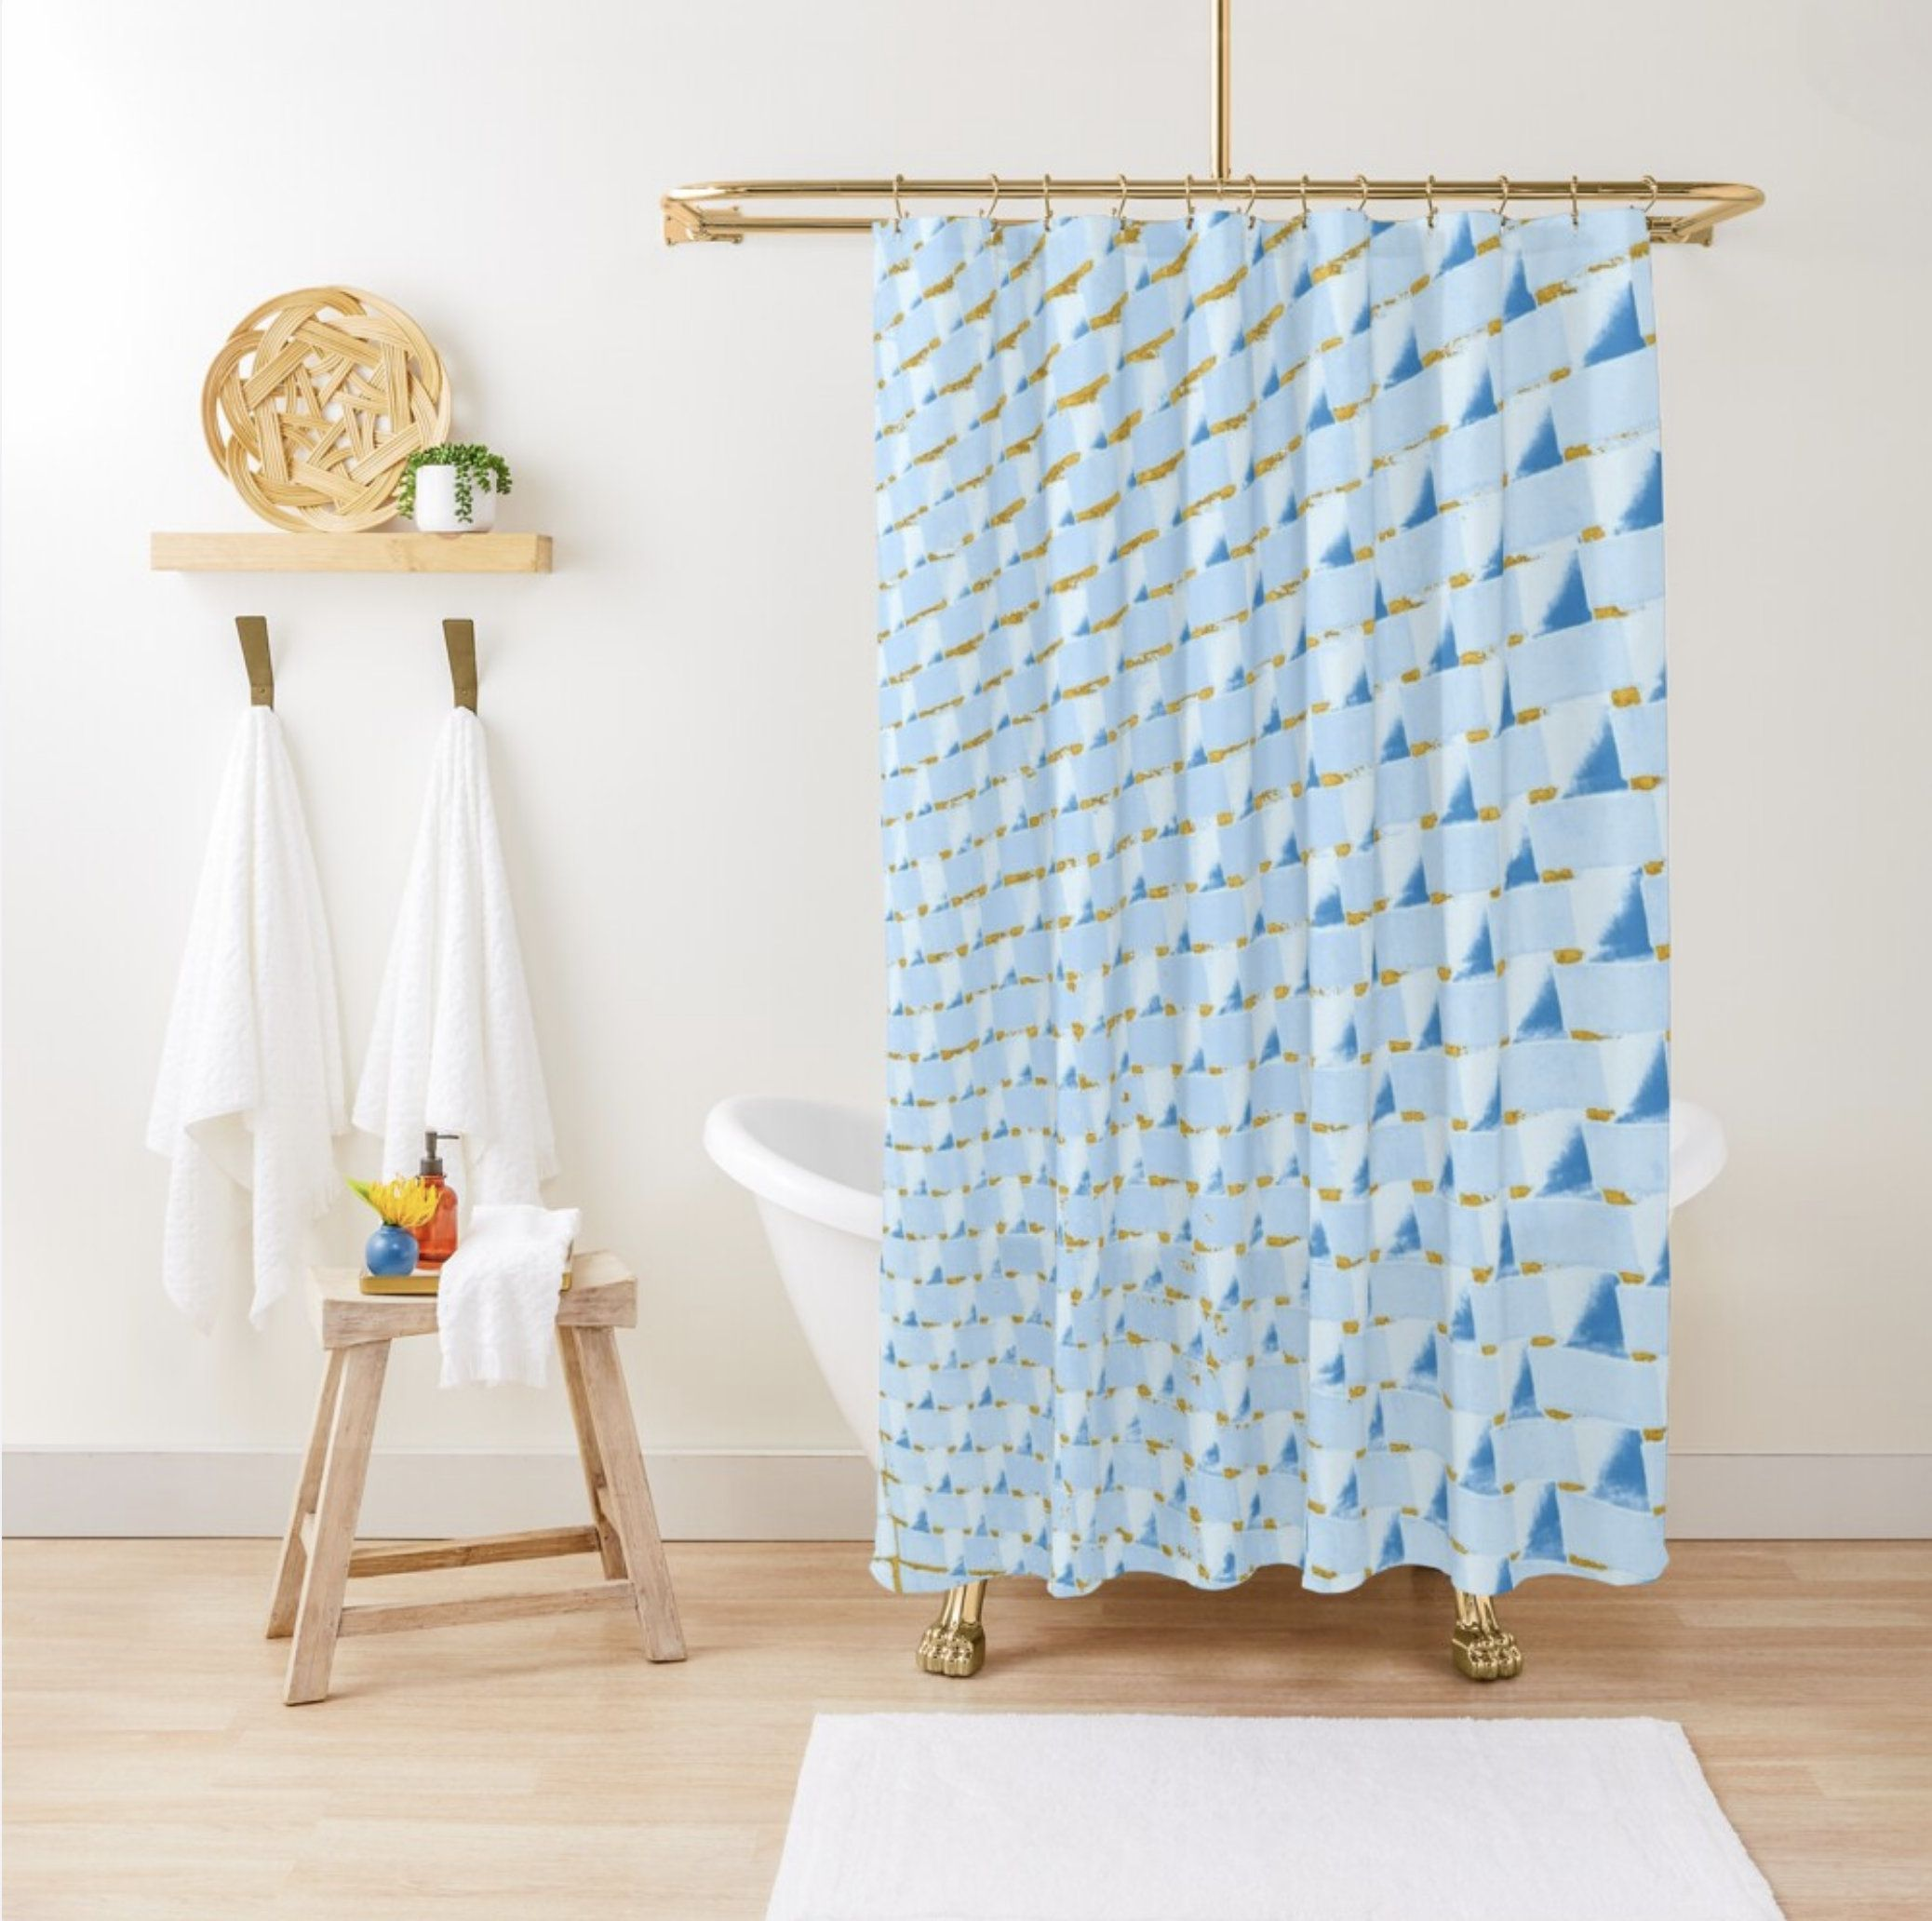 Geometric Abstract Shower Curtain Gold Light Blue Bathroom Decor